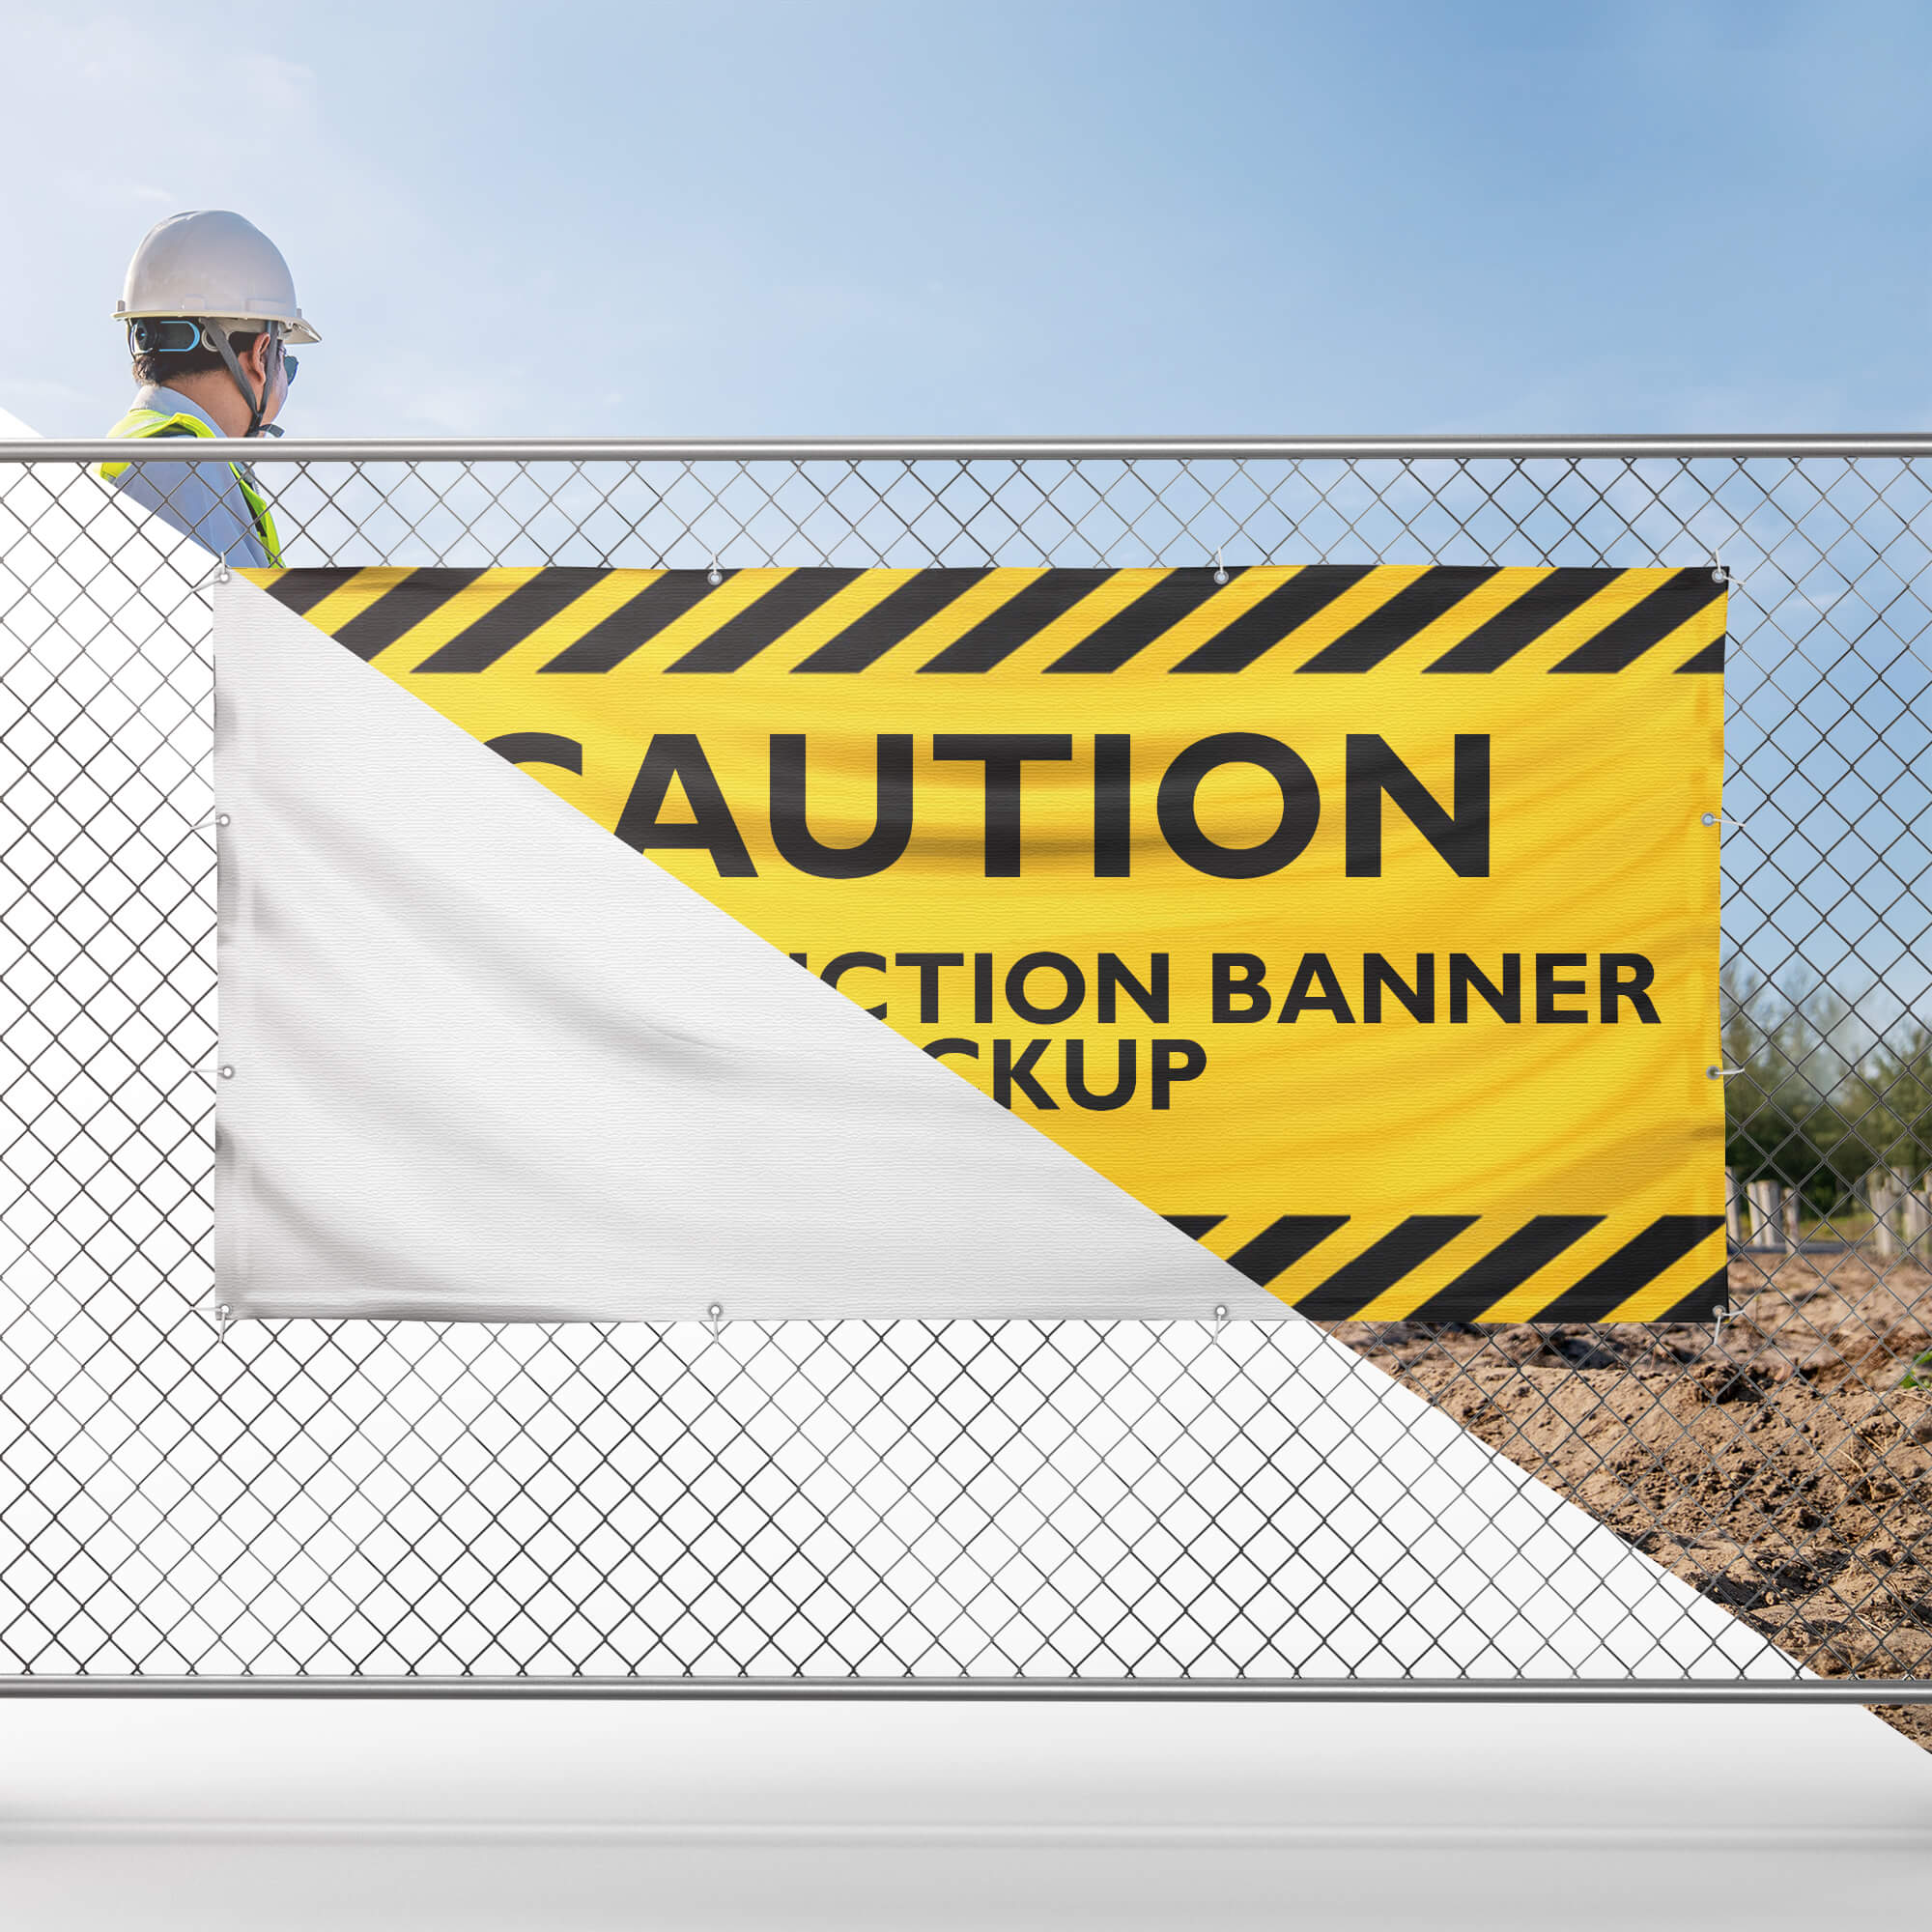 Editable Free Construction Banner Mockup PSD Template